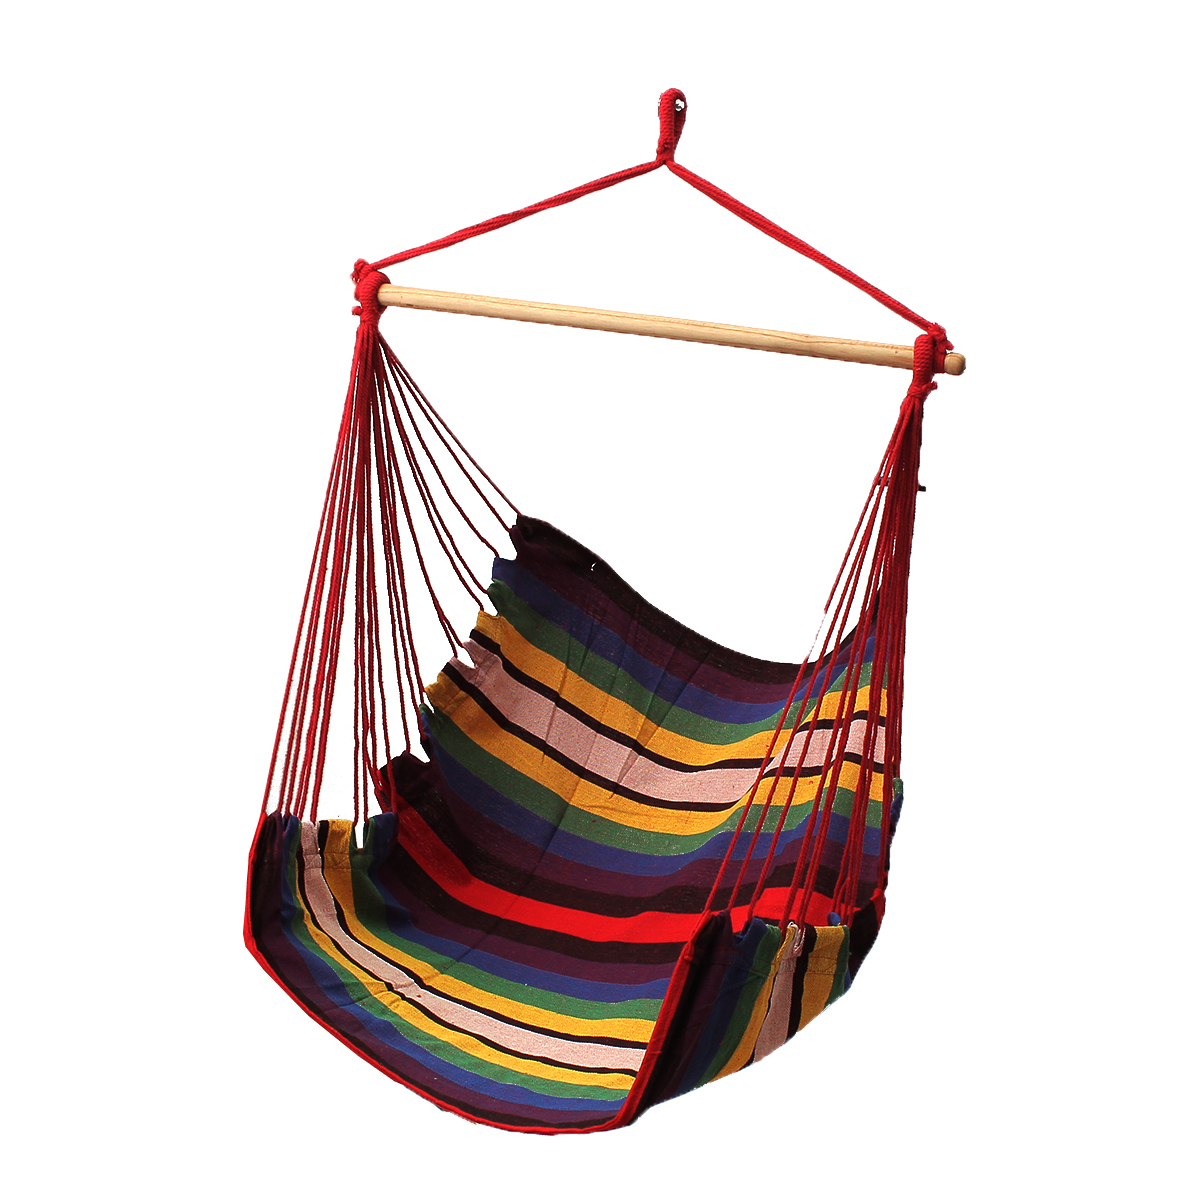 Garden Patio Hanging Thicken Hammock Chair Indoor Outdoor